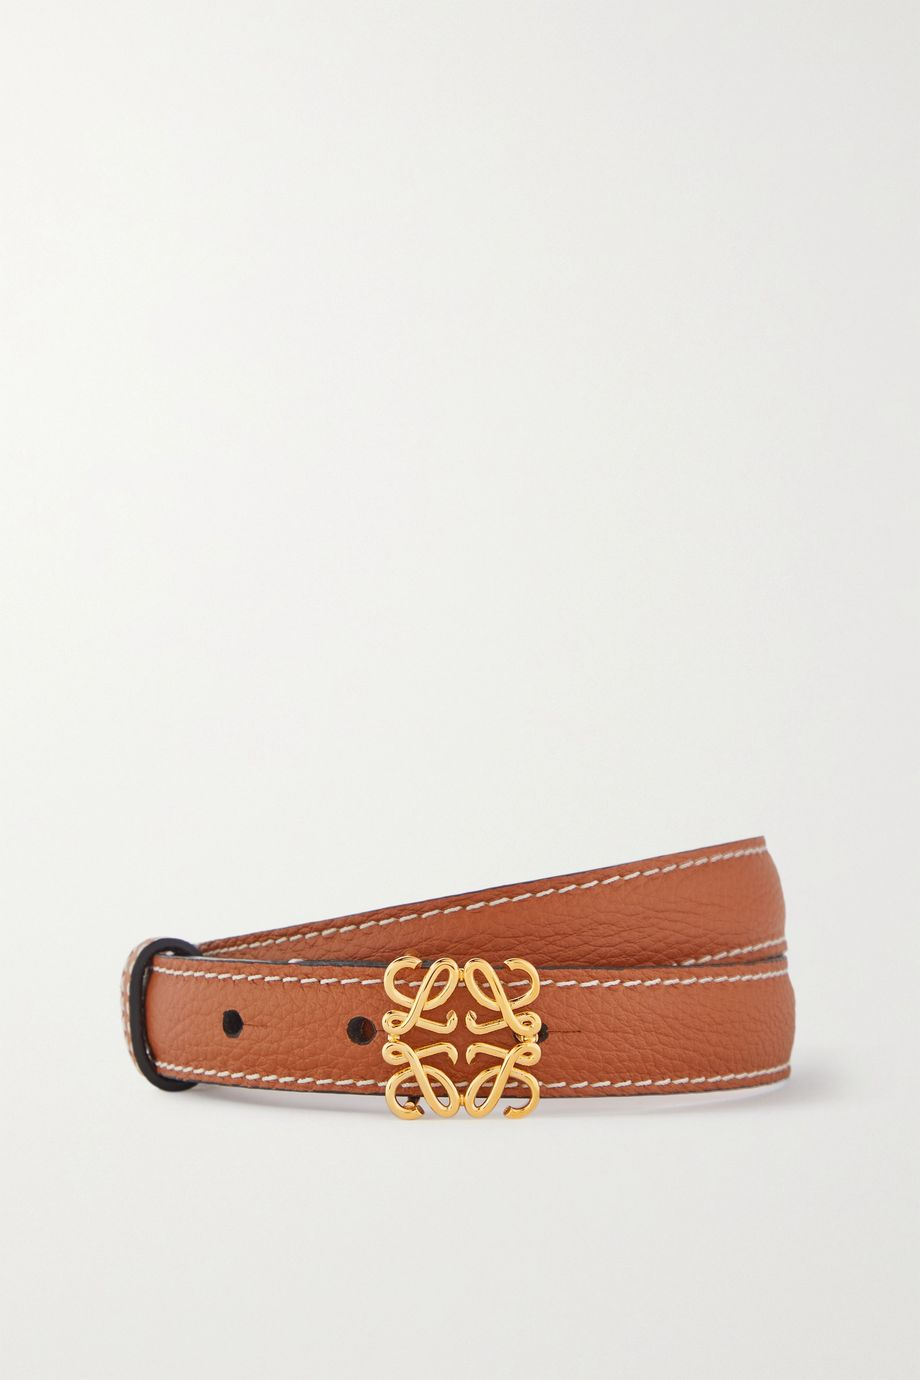 LOEWE Anagram textured-leather belt